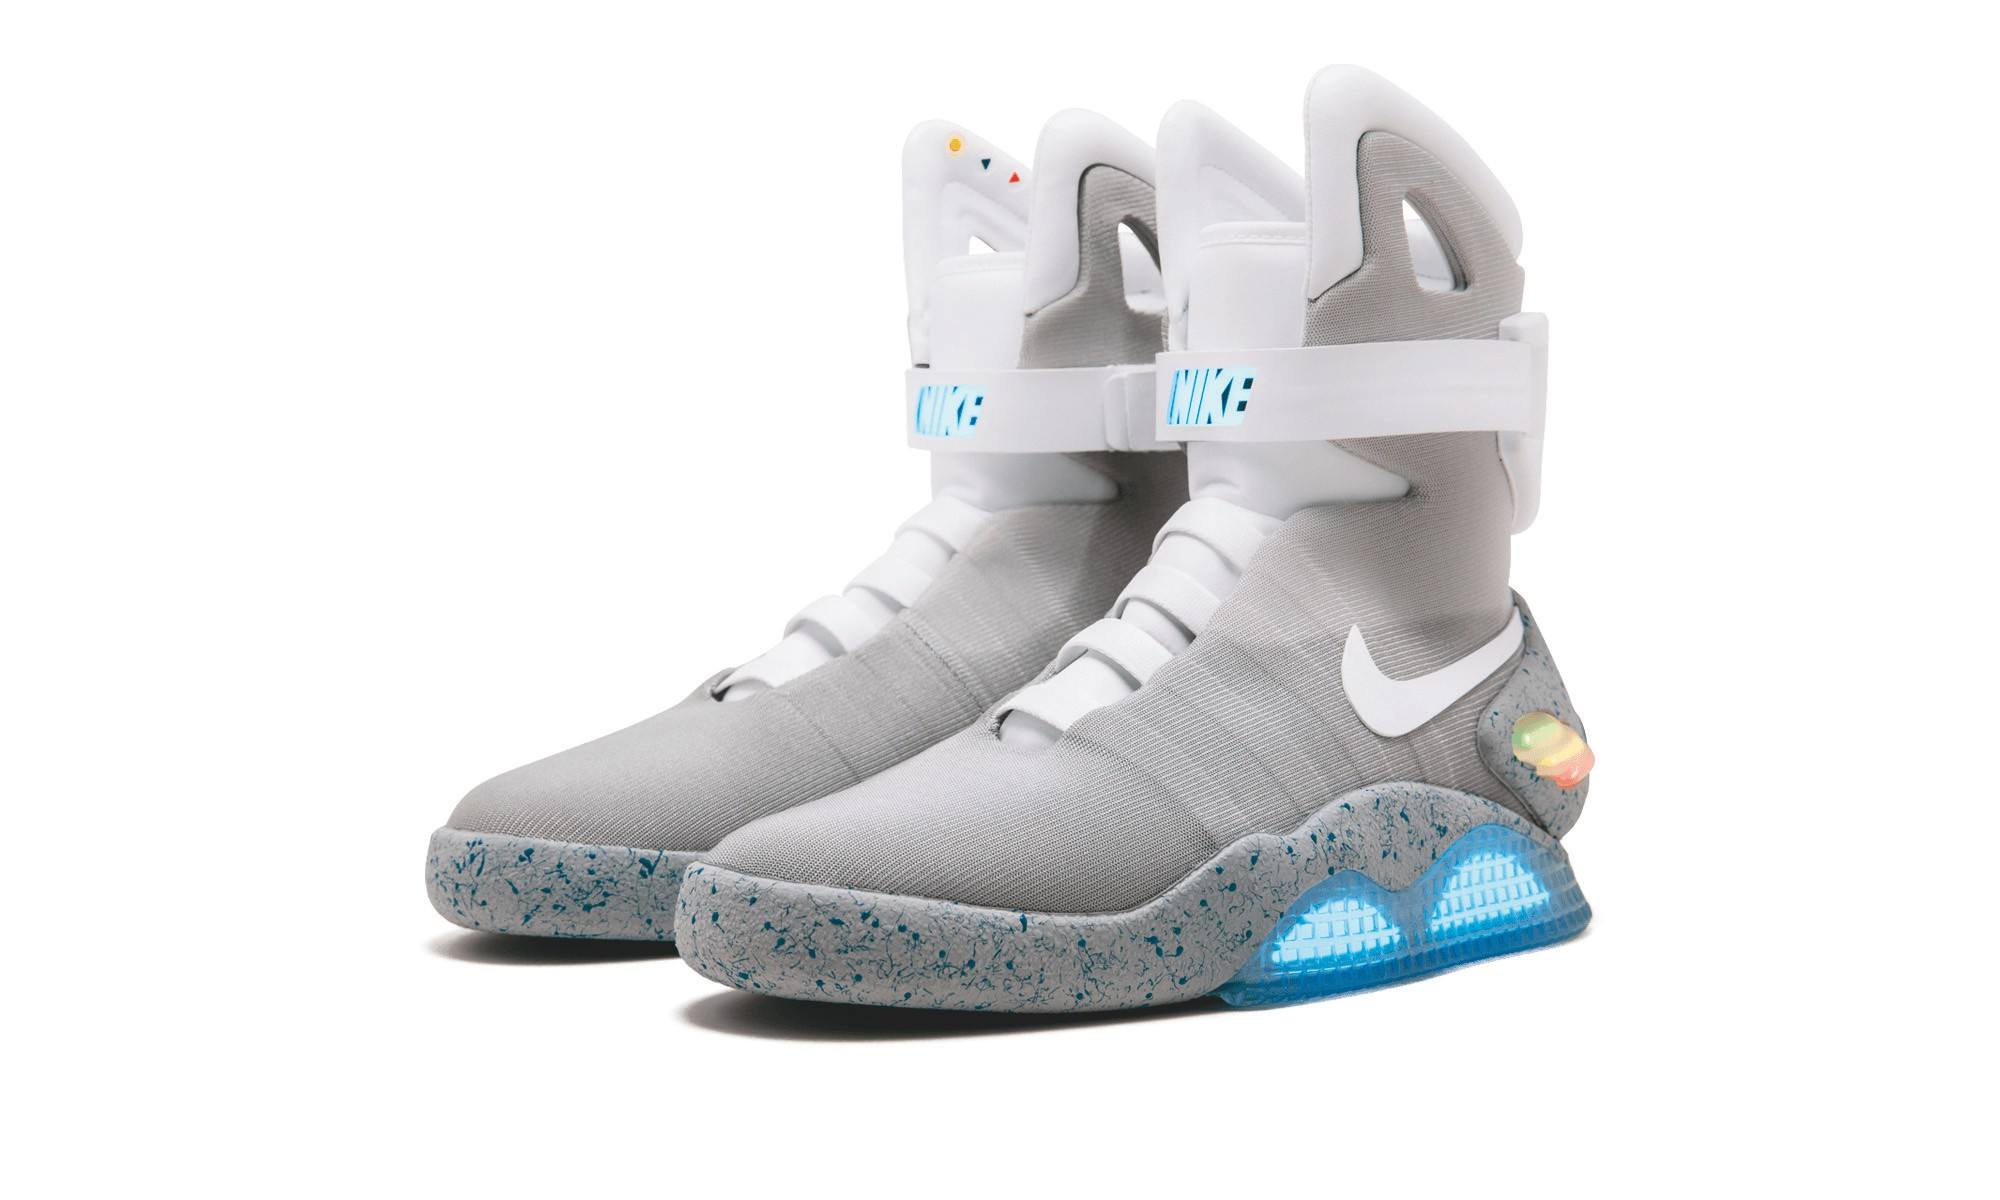 2016 Nike Mags among sneakers up for auction